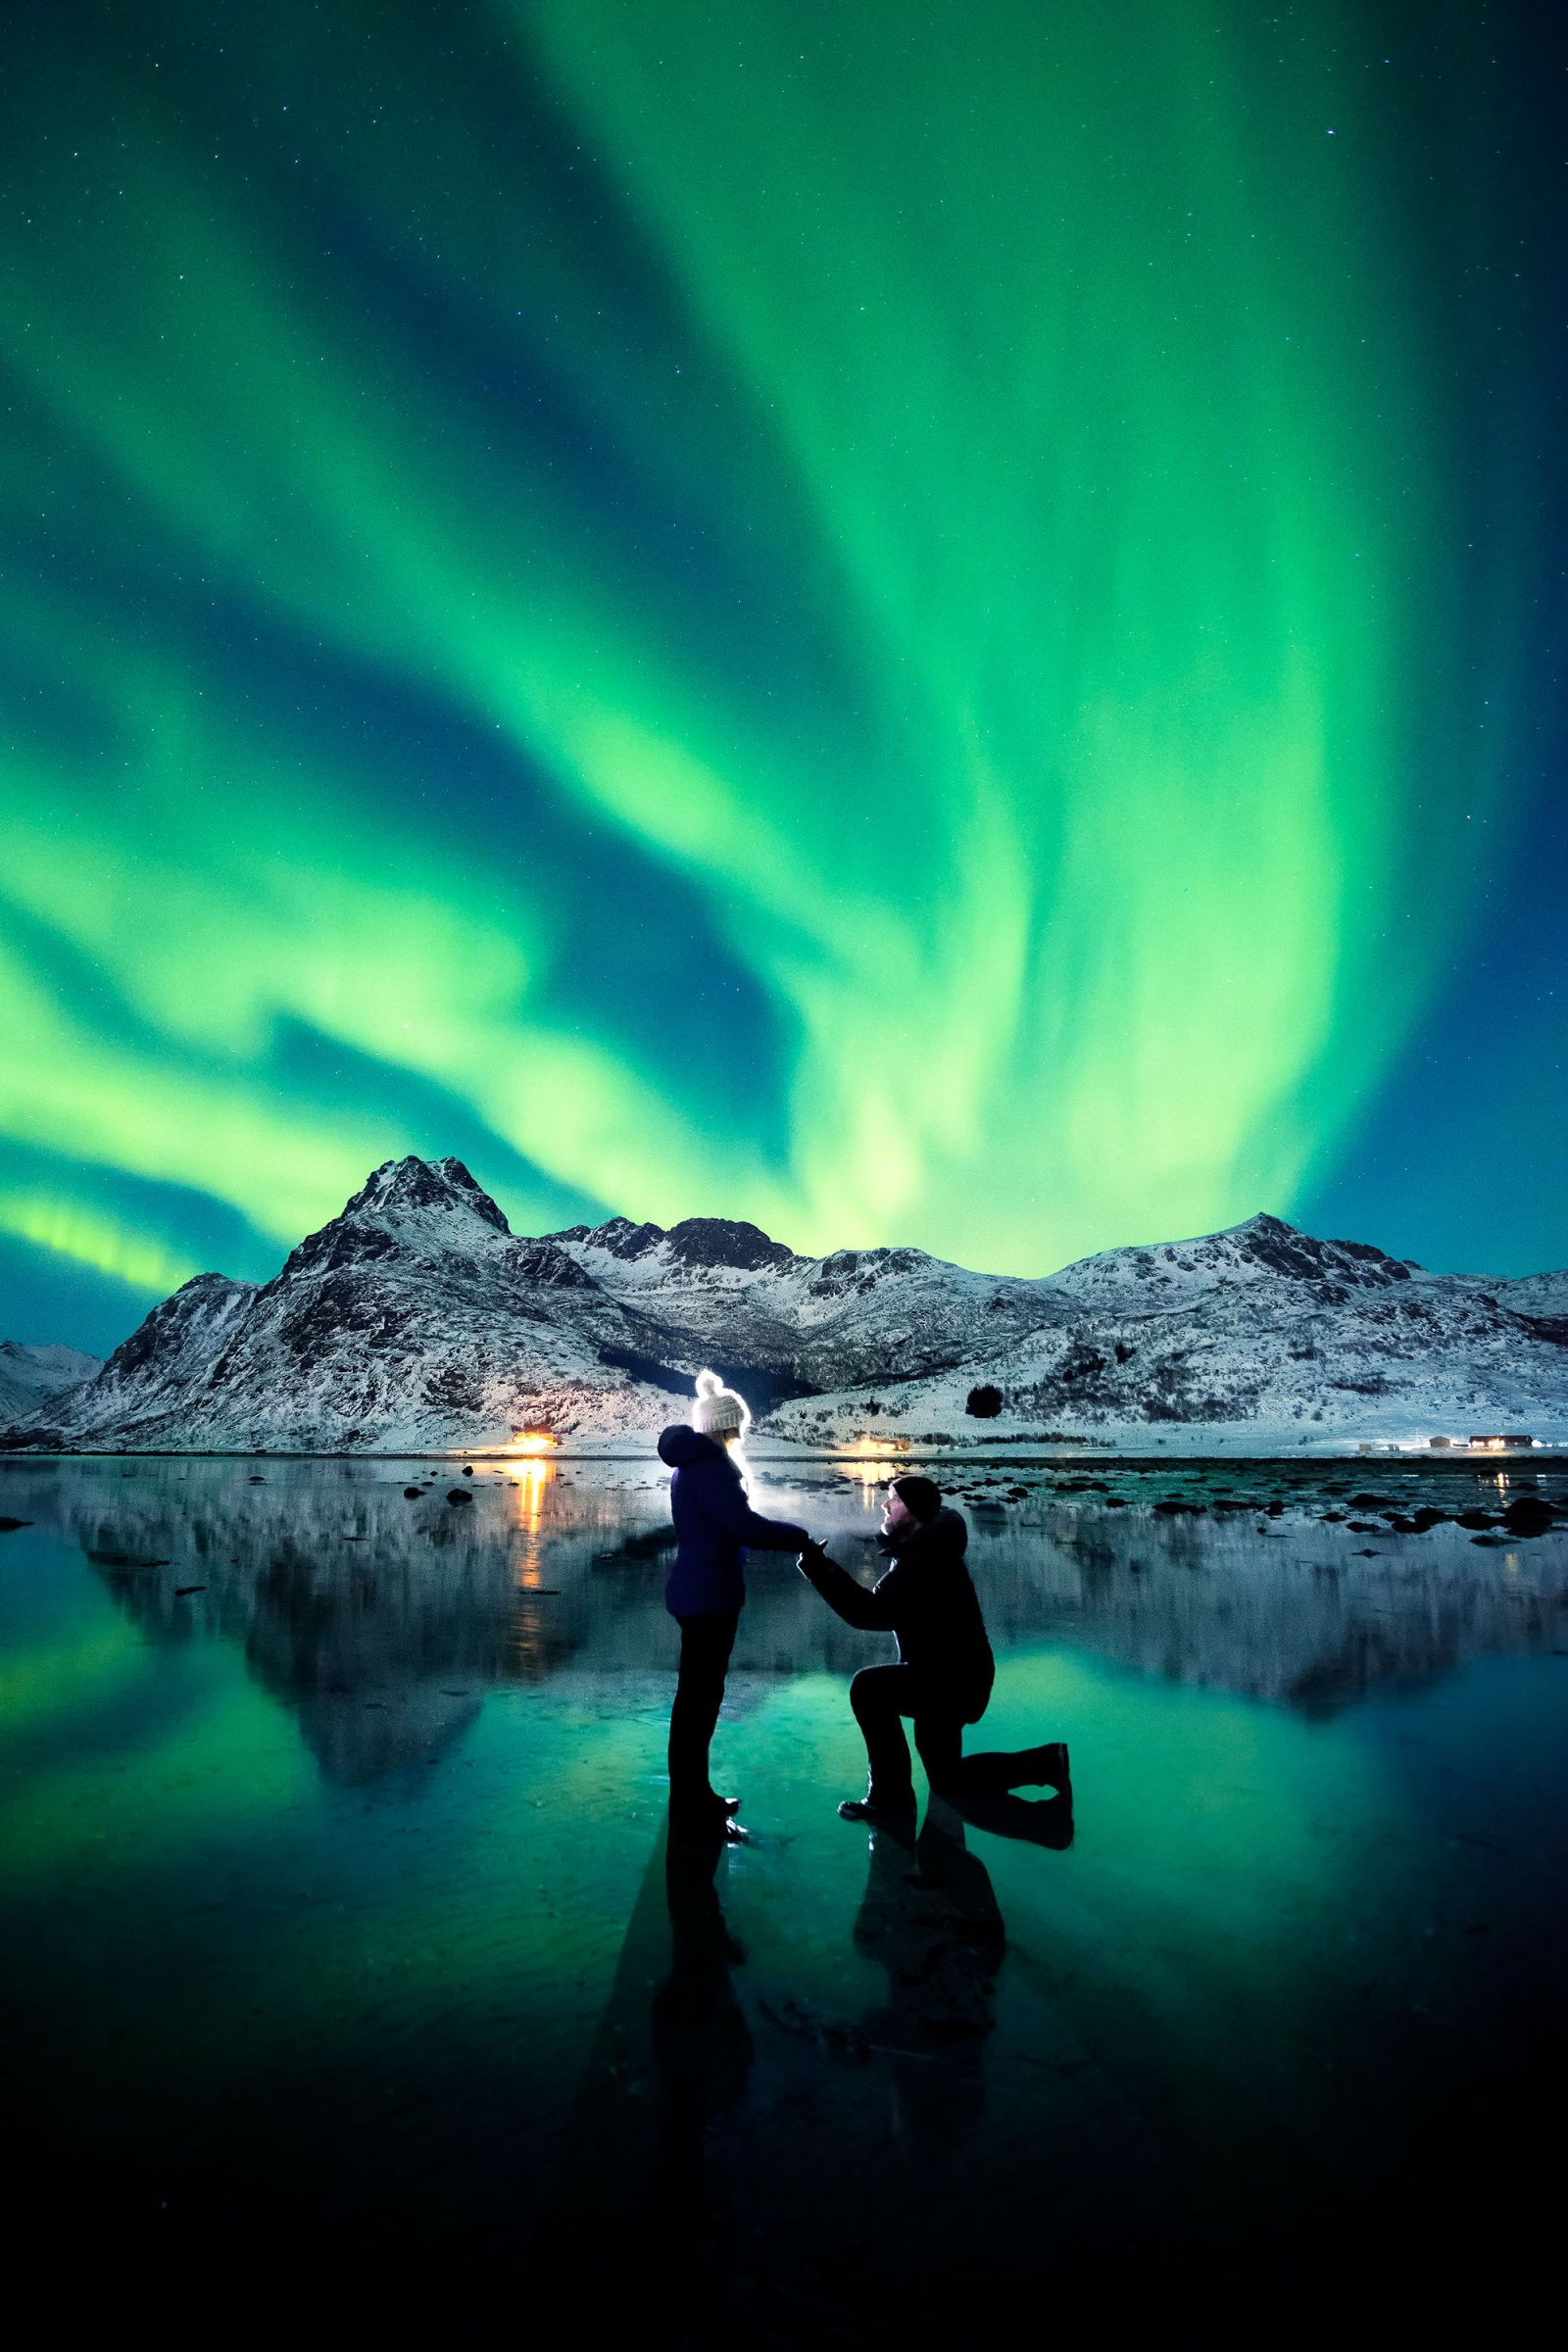 Northern Lights Coupon Book New Photographer Proposes Under The Northern Lights Achieves The Most Review